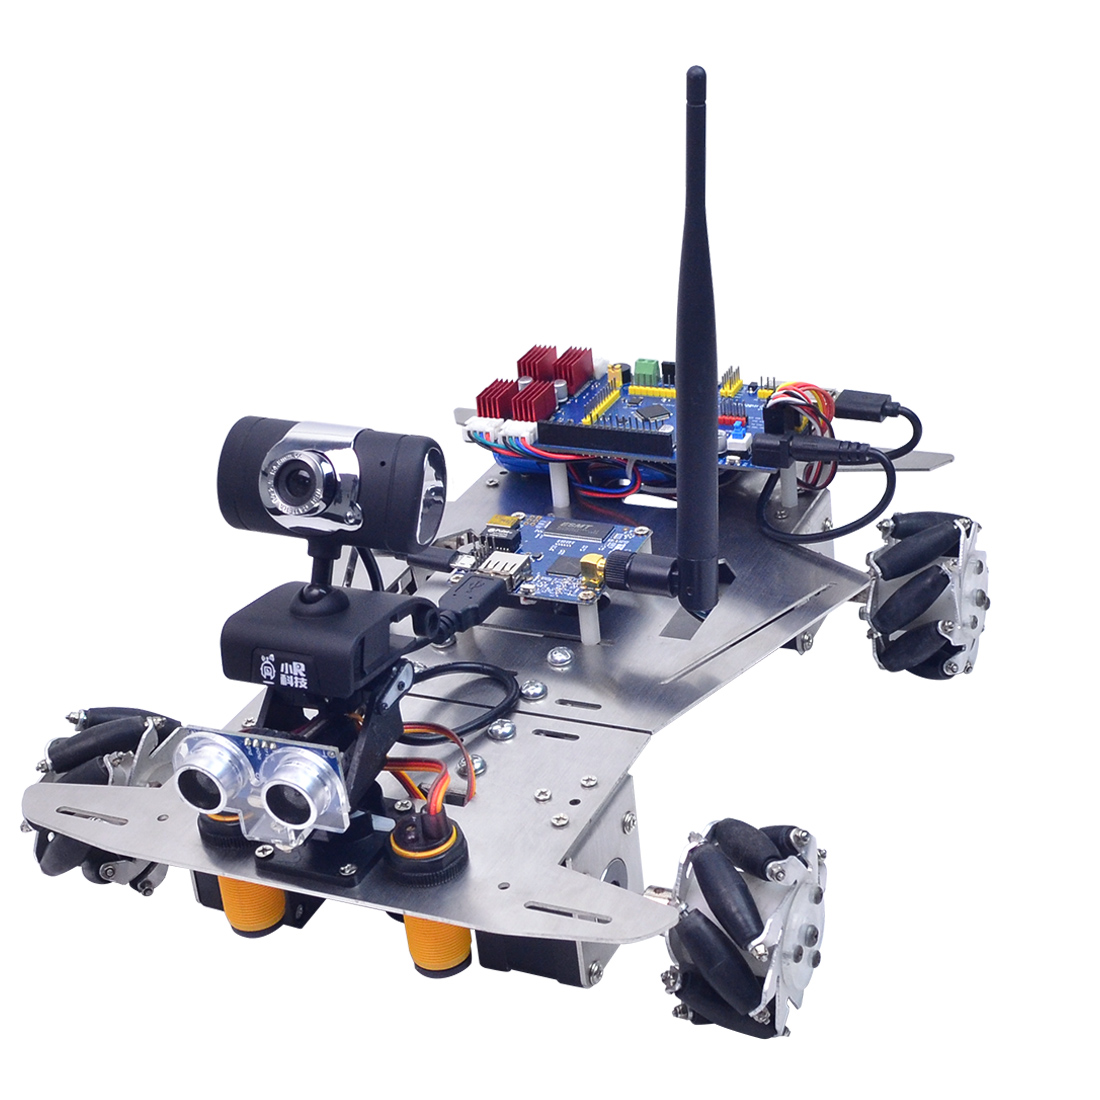 2019 New XR Master Omni-Directional Mecanum Wheel Robot - WIFI + Bluetooth Version With High Quality